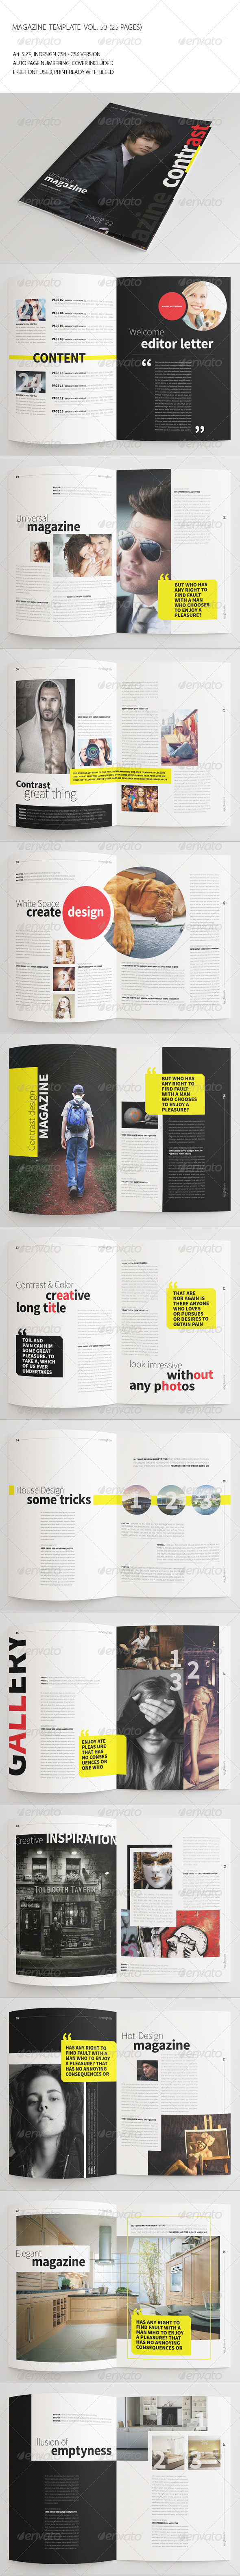 GraphicRiver 25 Pages Contrast Magazine Vol53 7690706